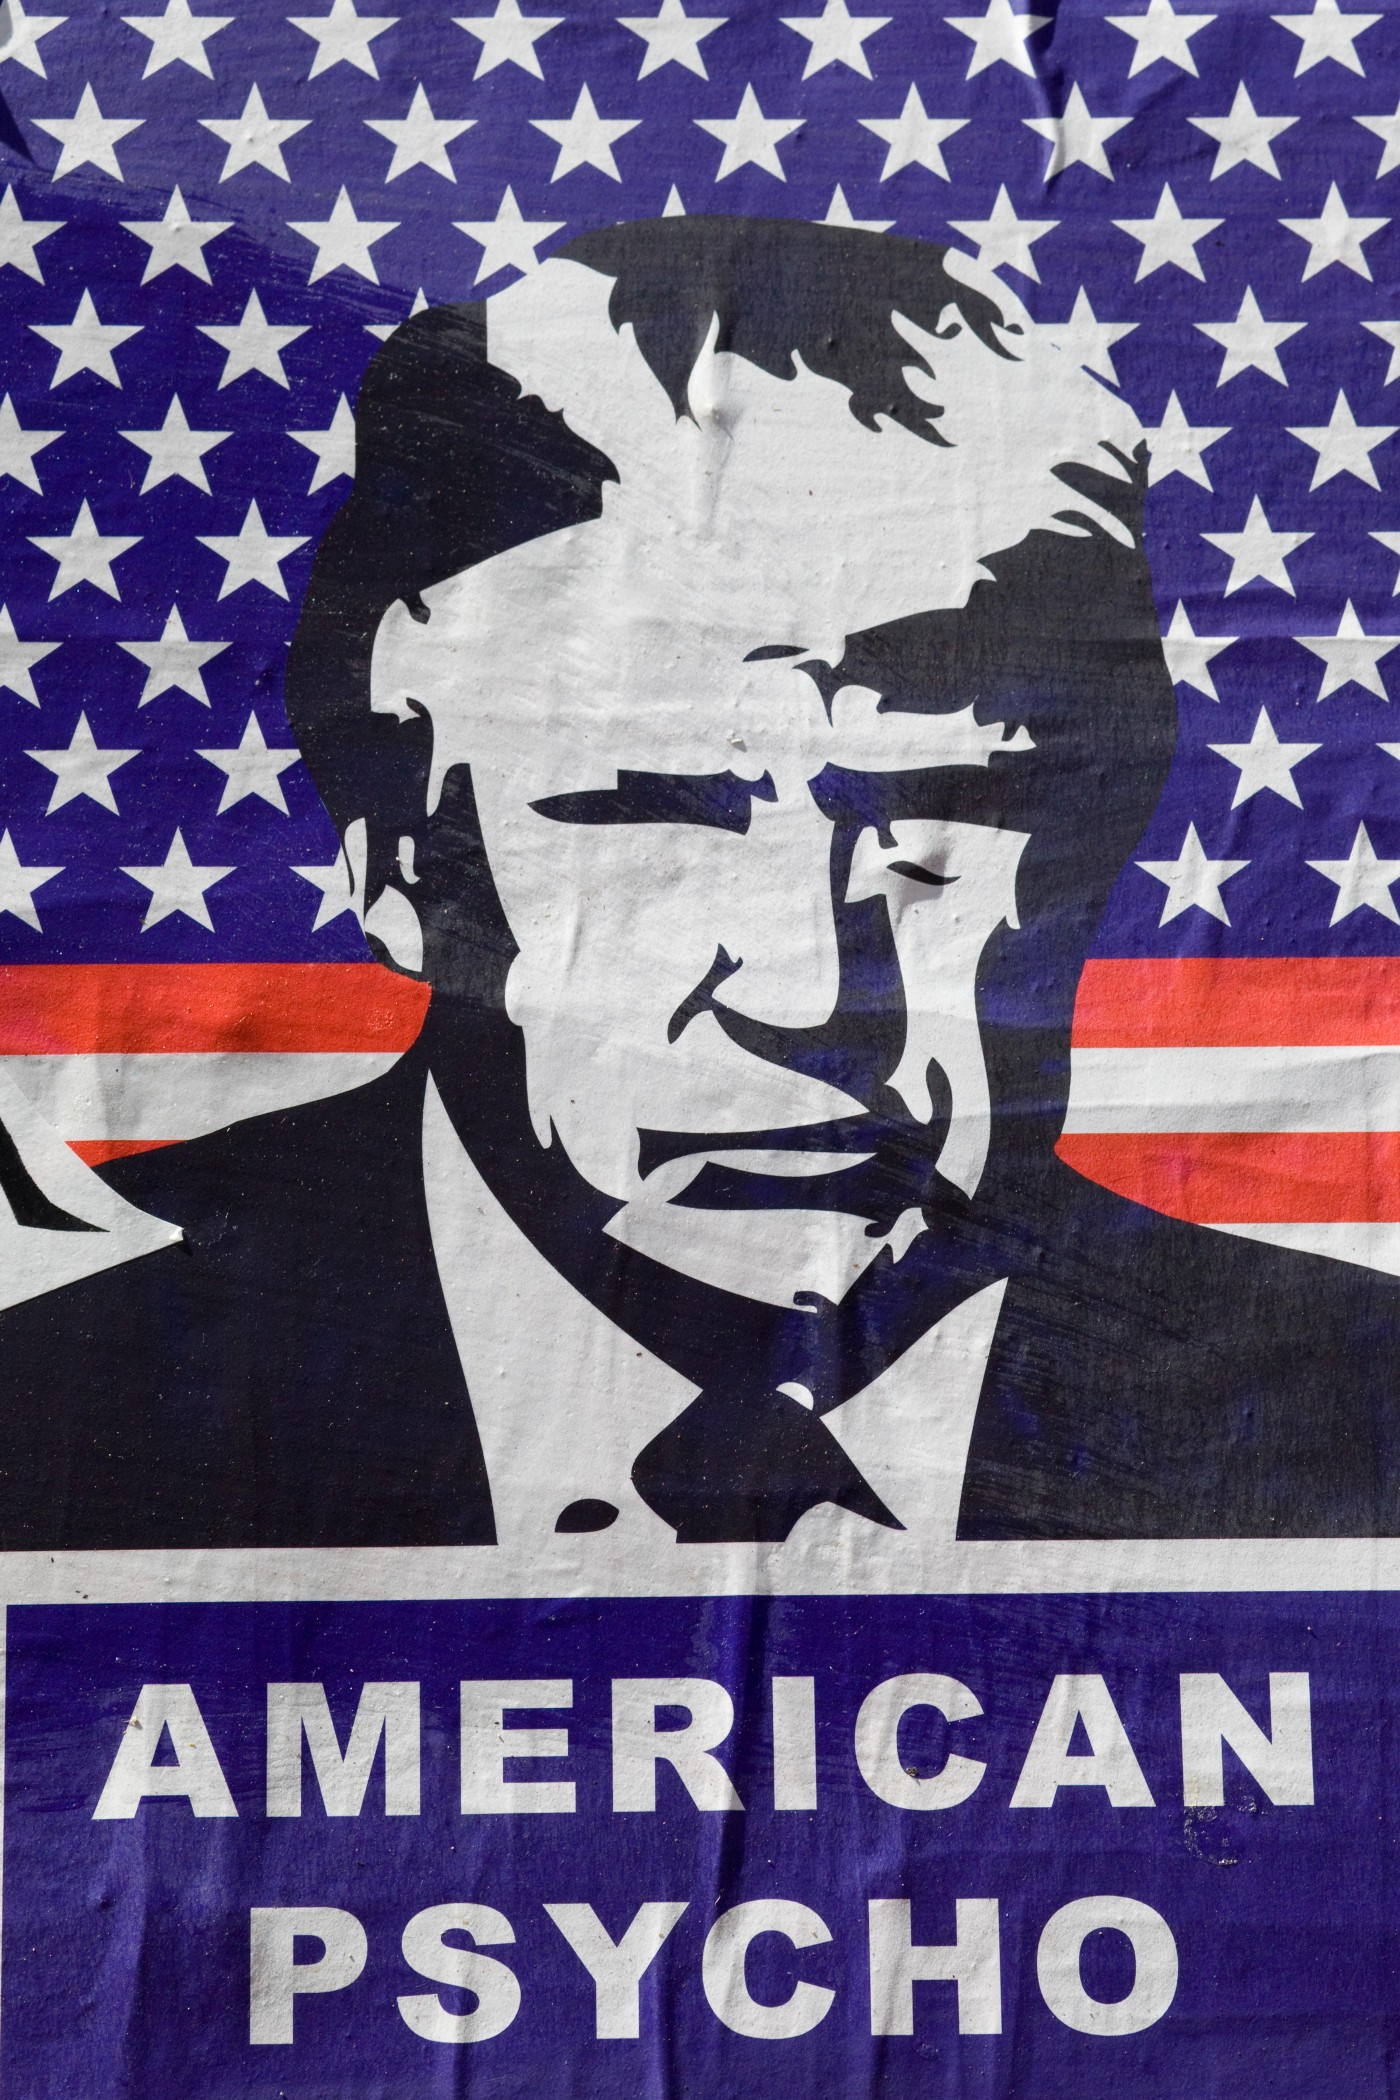 """Cartoon image of Donald Trump in front of the American flag, with the caption """"American Psycho""""."""